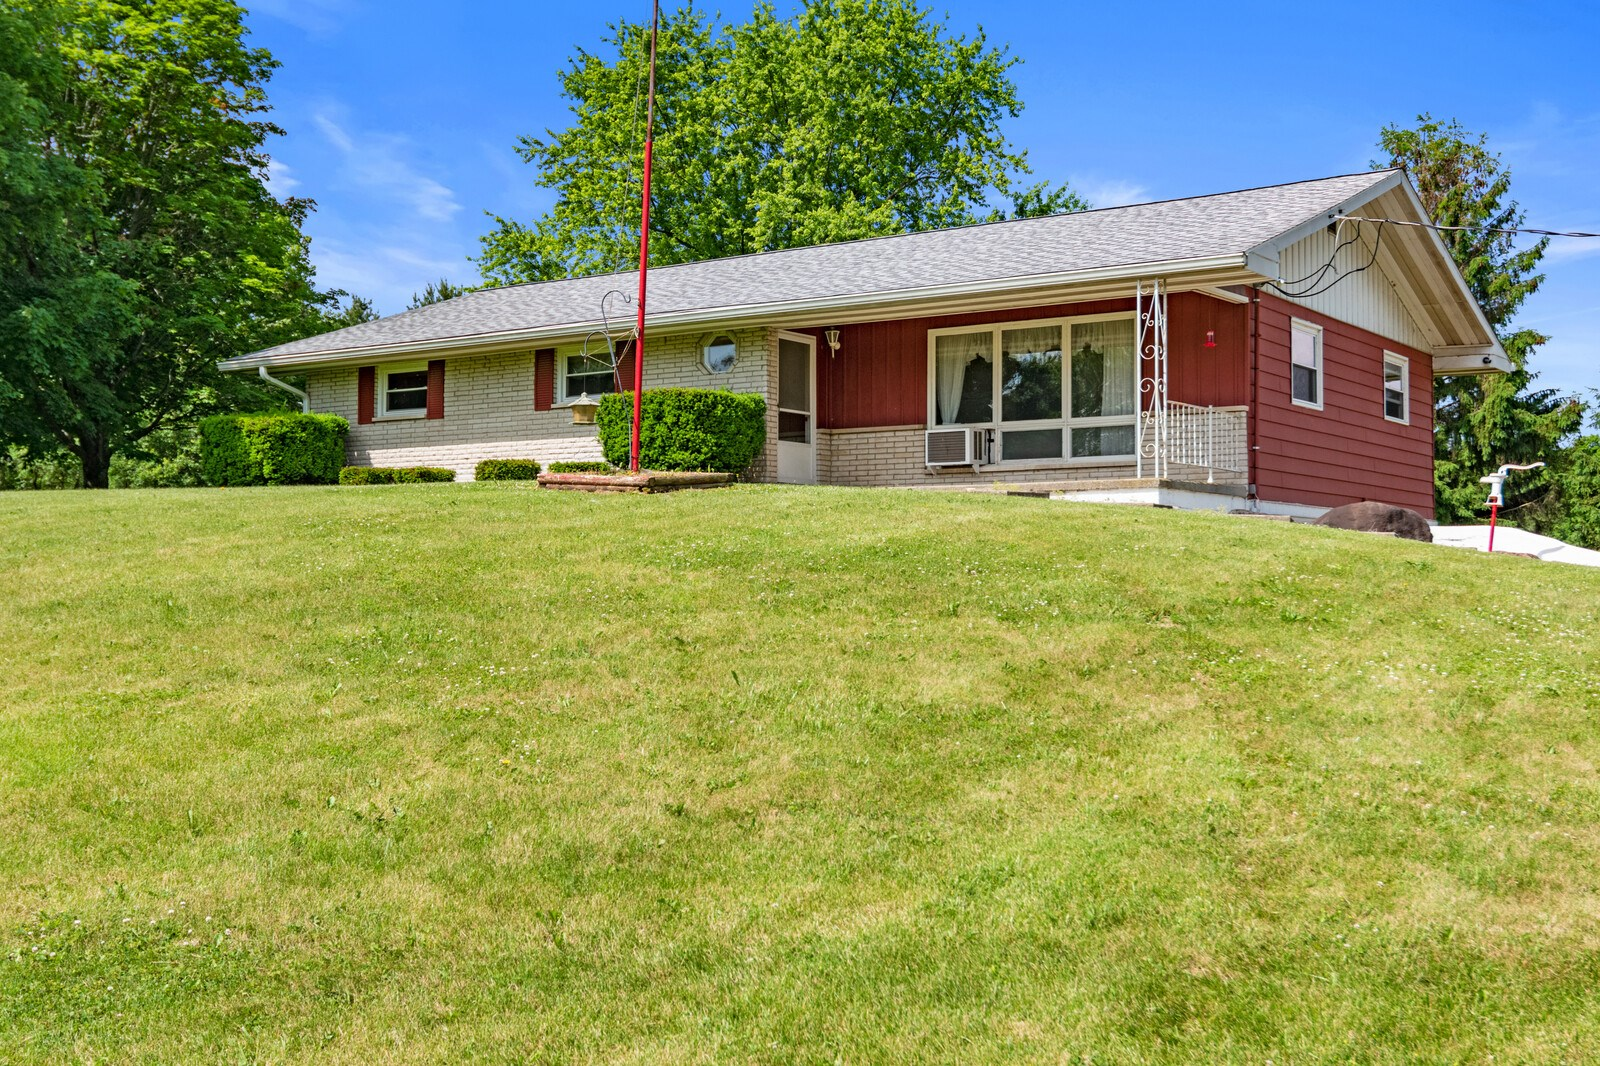 Country Home for Sale Springport, Indiana